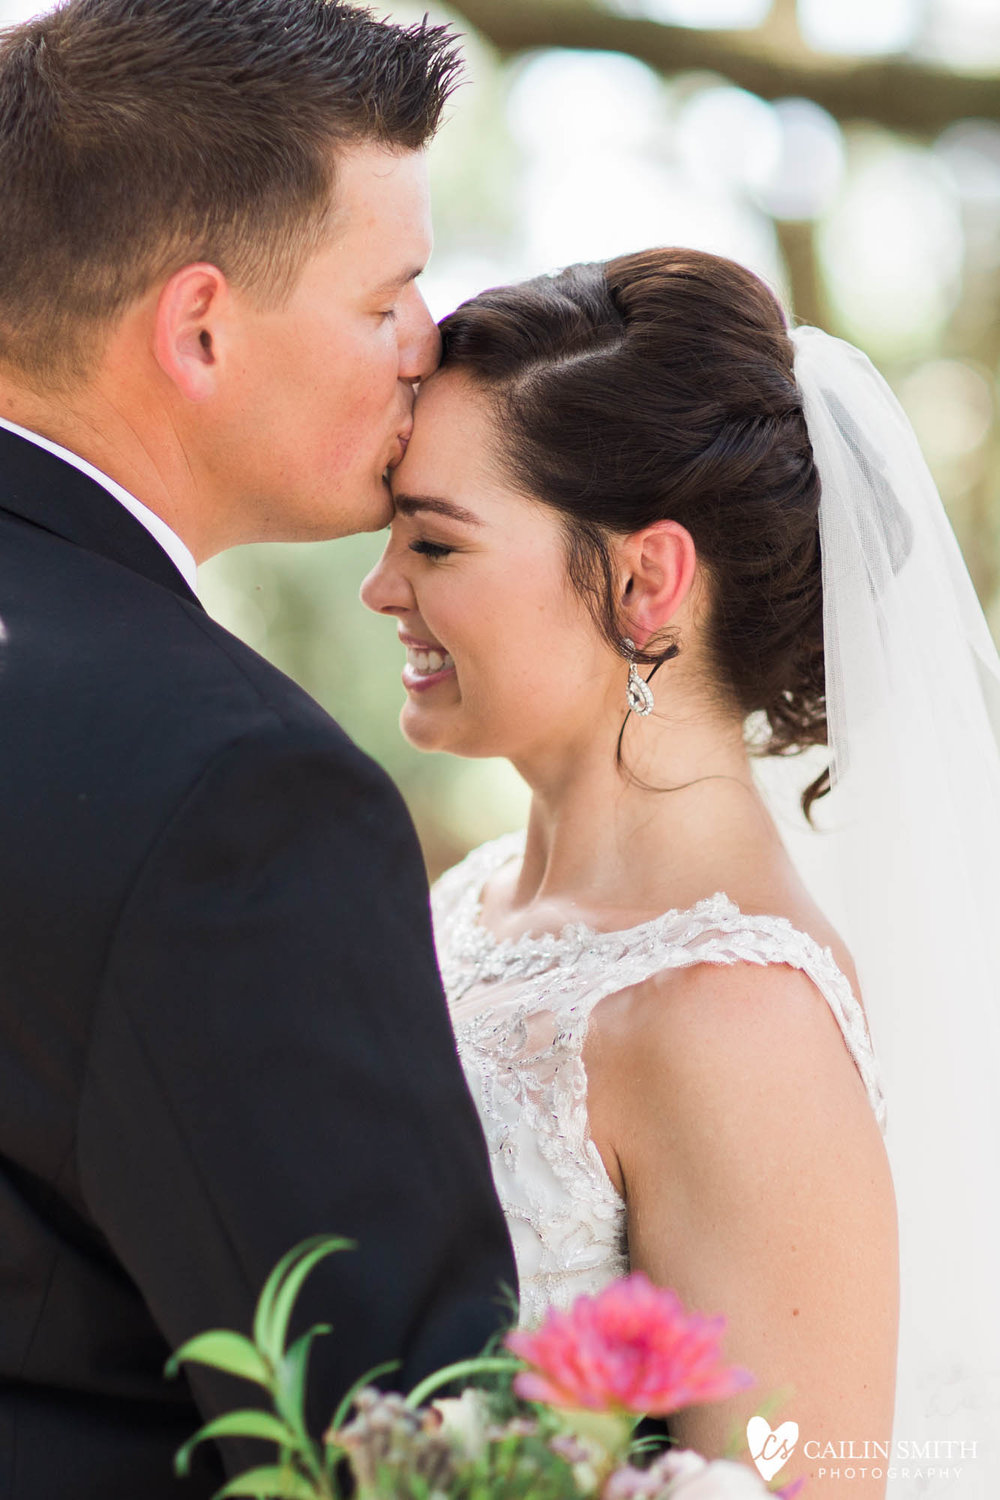 Bethany_Kyle_Bowing_Oaks_Plantation_Wedding_Photography_0047.jpg